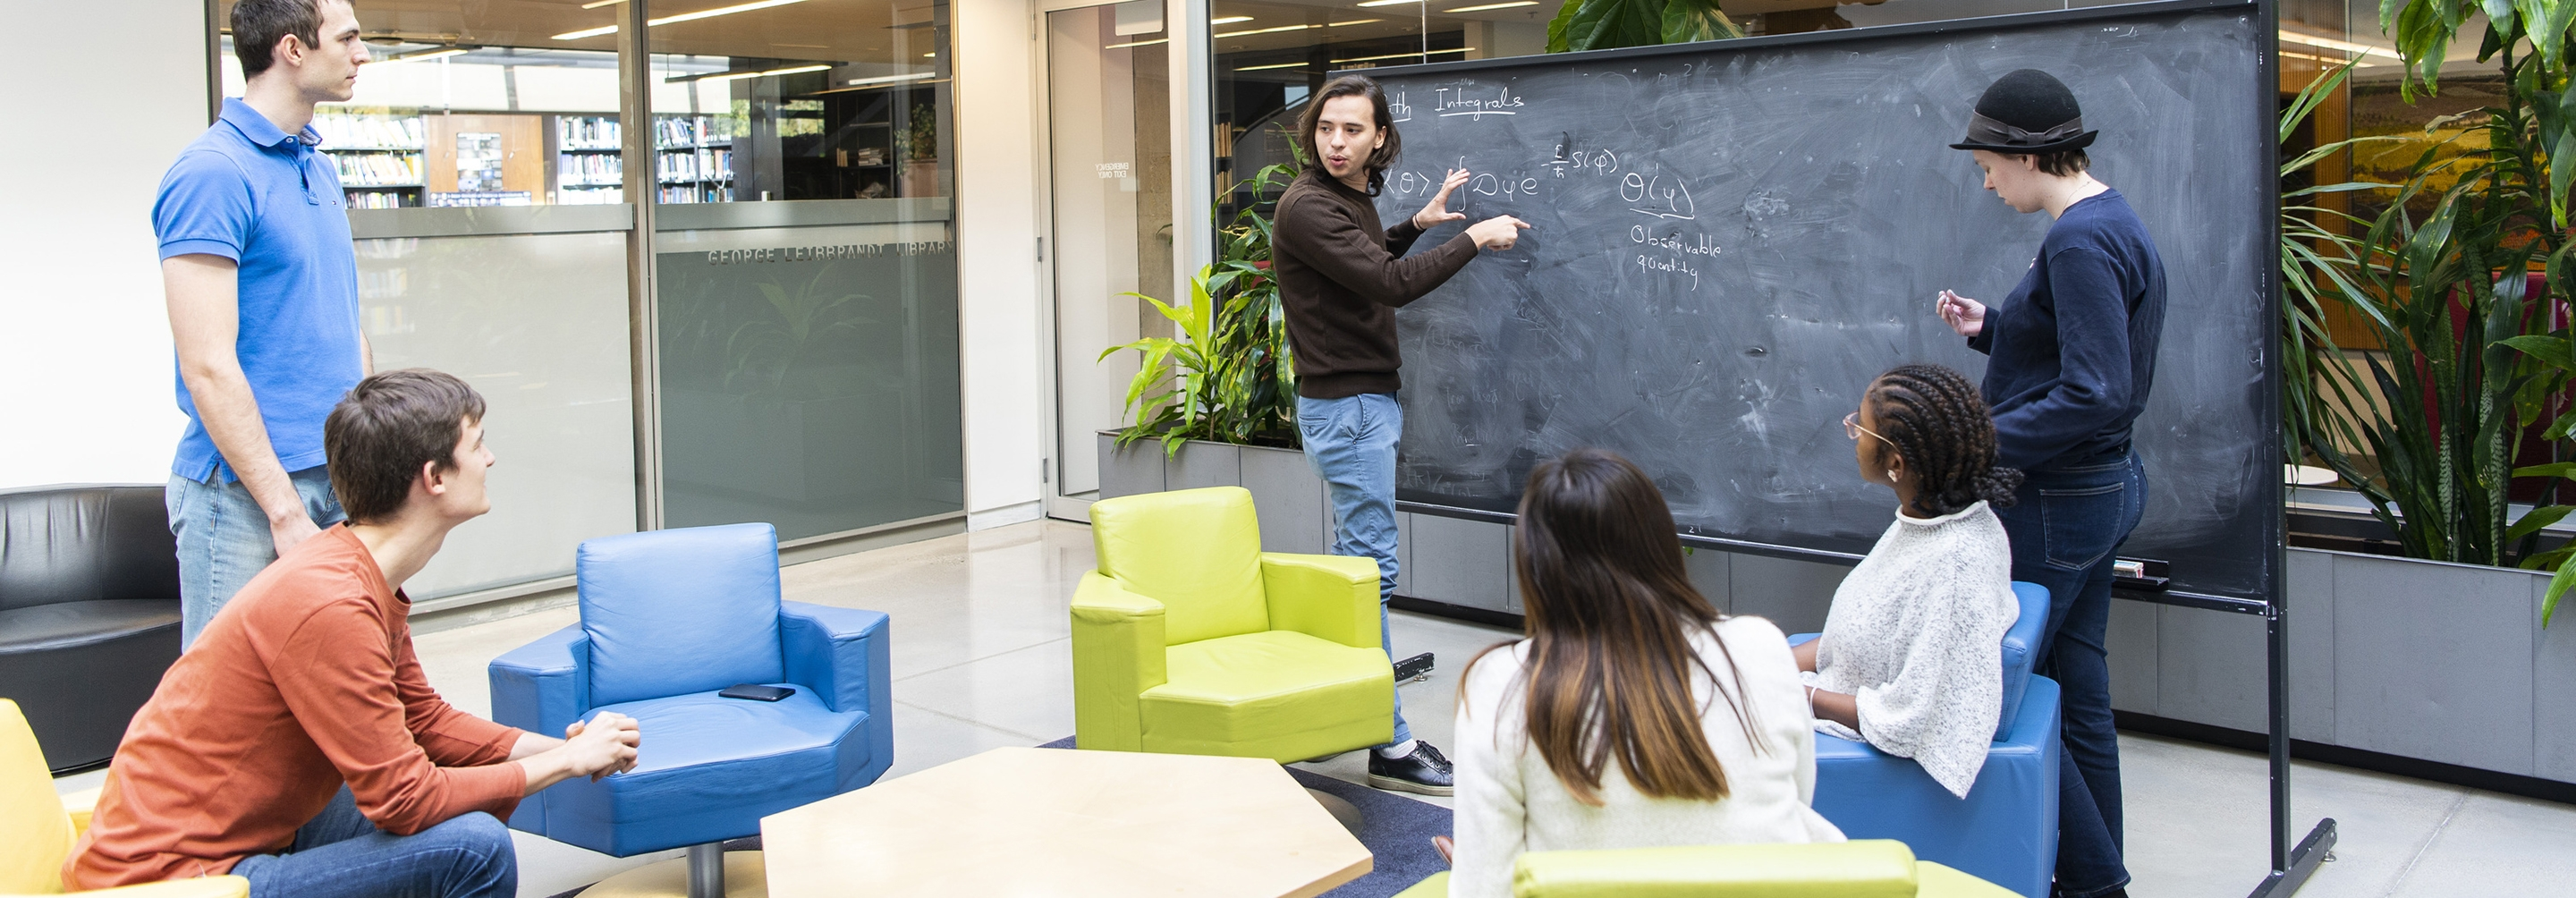 Students talking in a group around a chalkboard